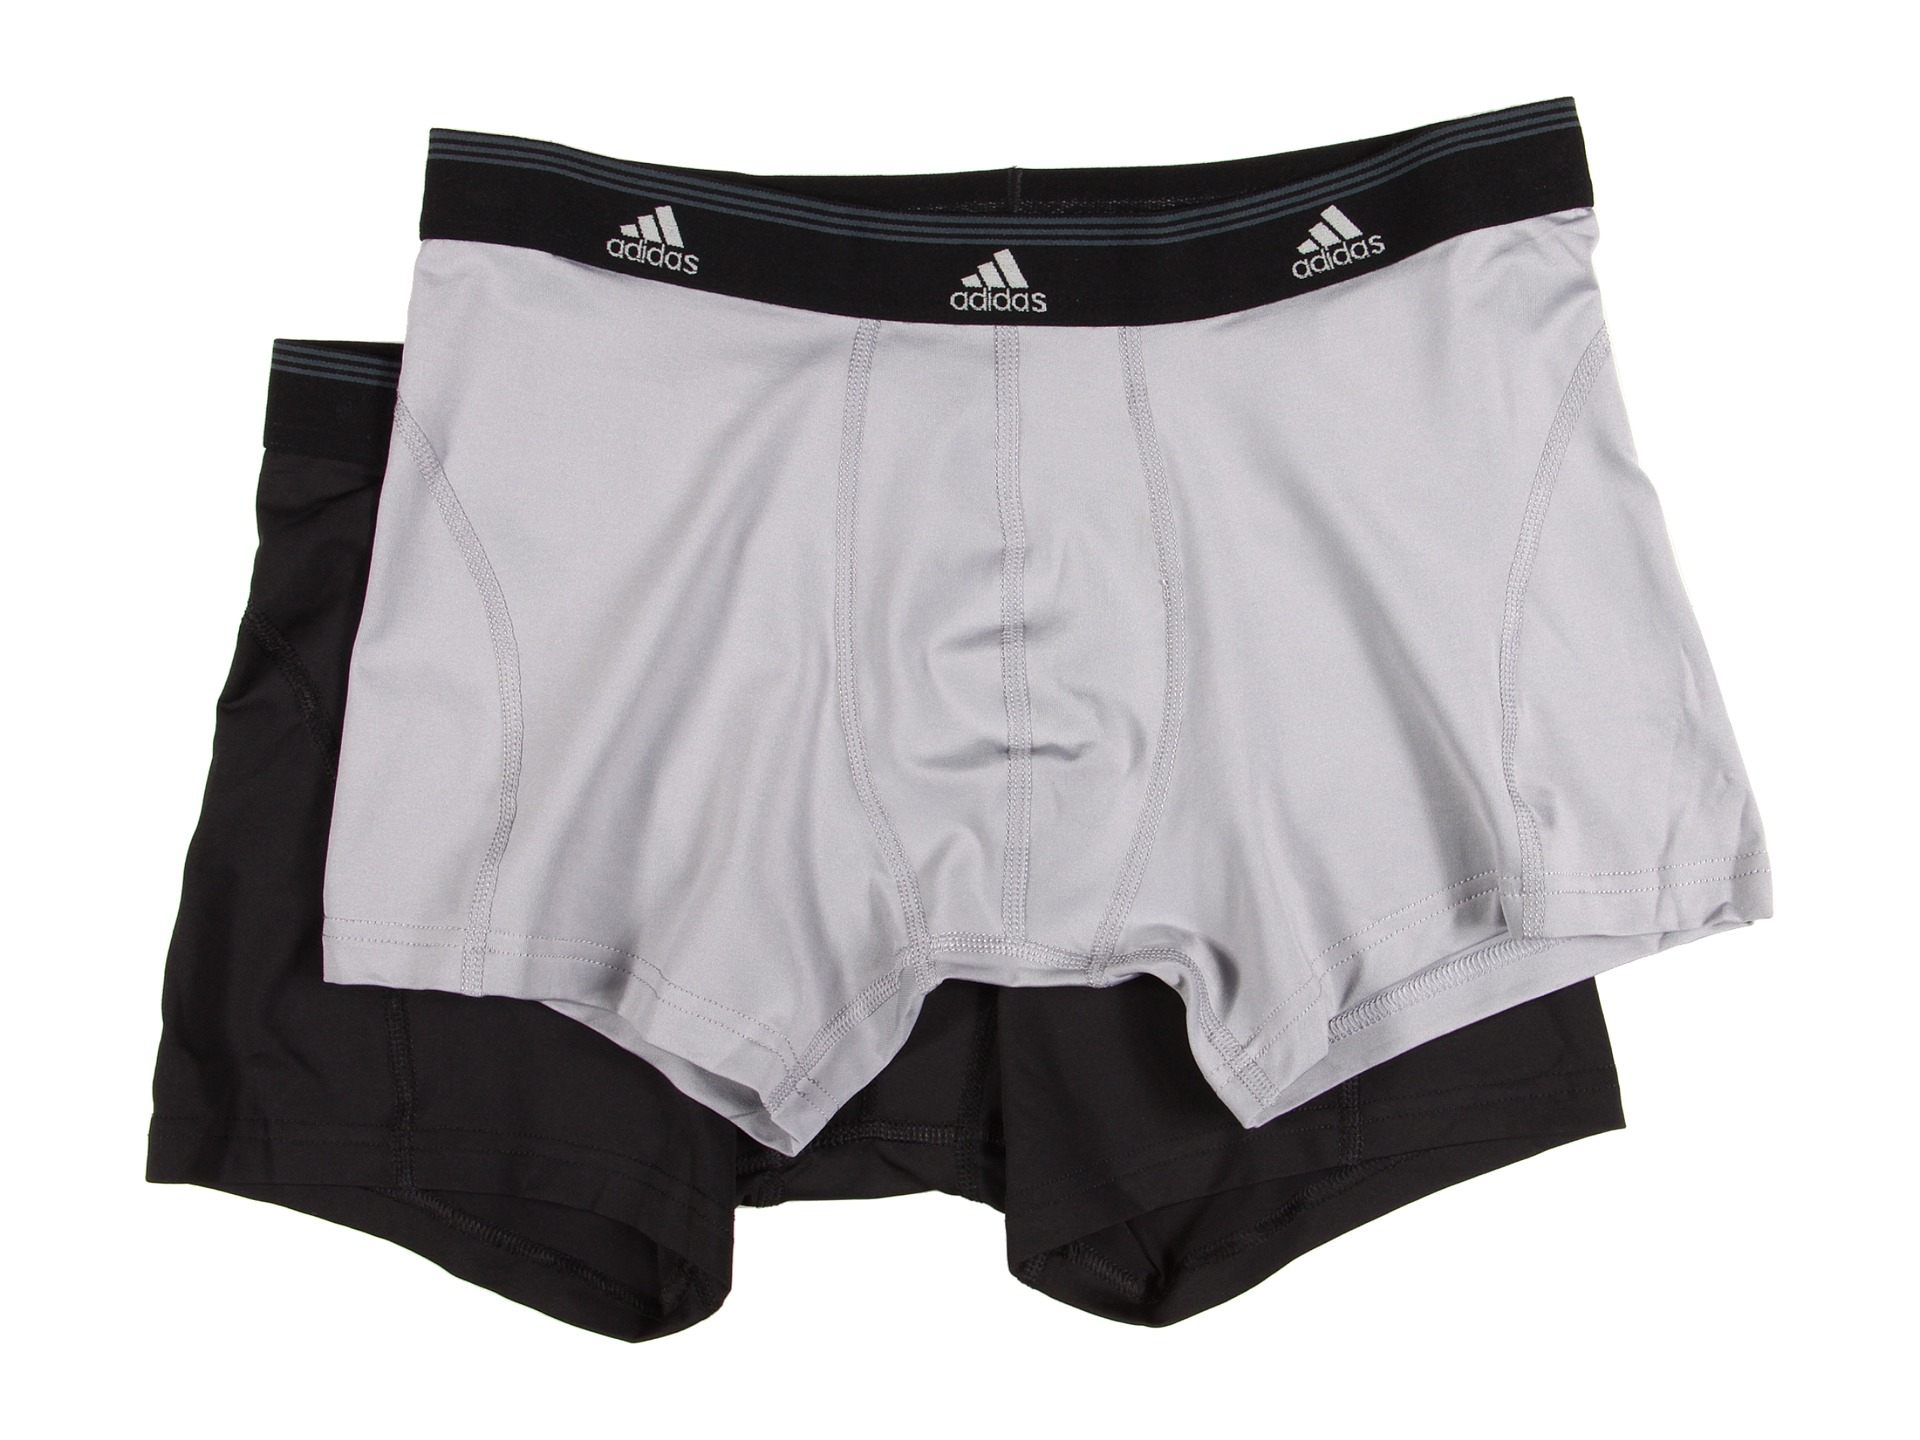 ec64300f1ba2 Lyst - adidas Sport Performance Climalite® 2-Pack Trunk in Black for Men